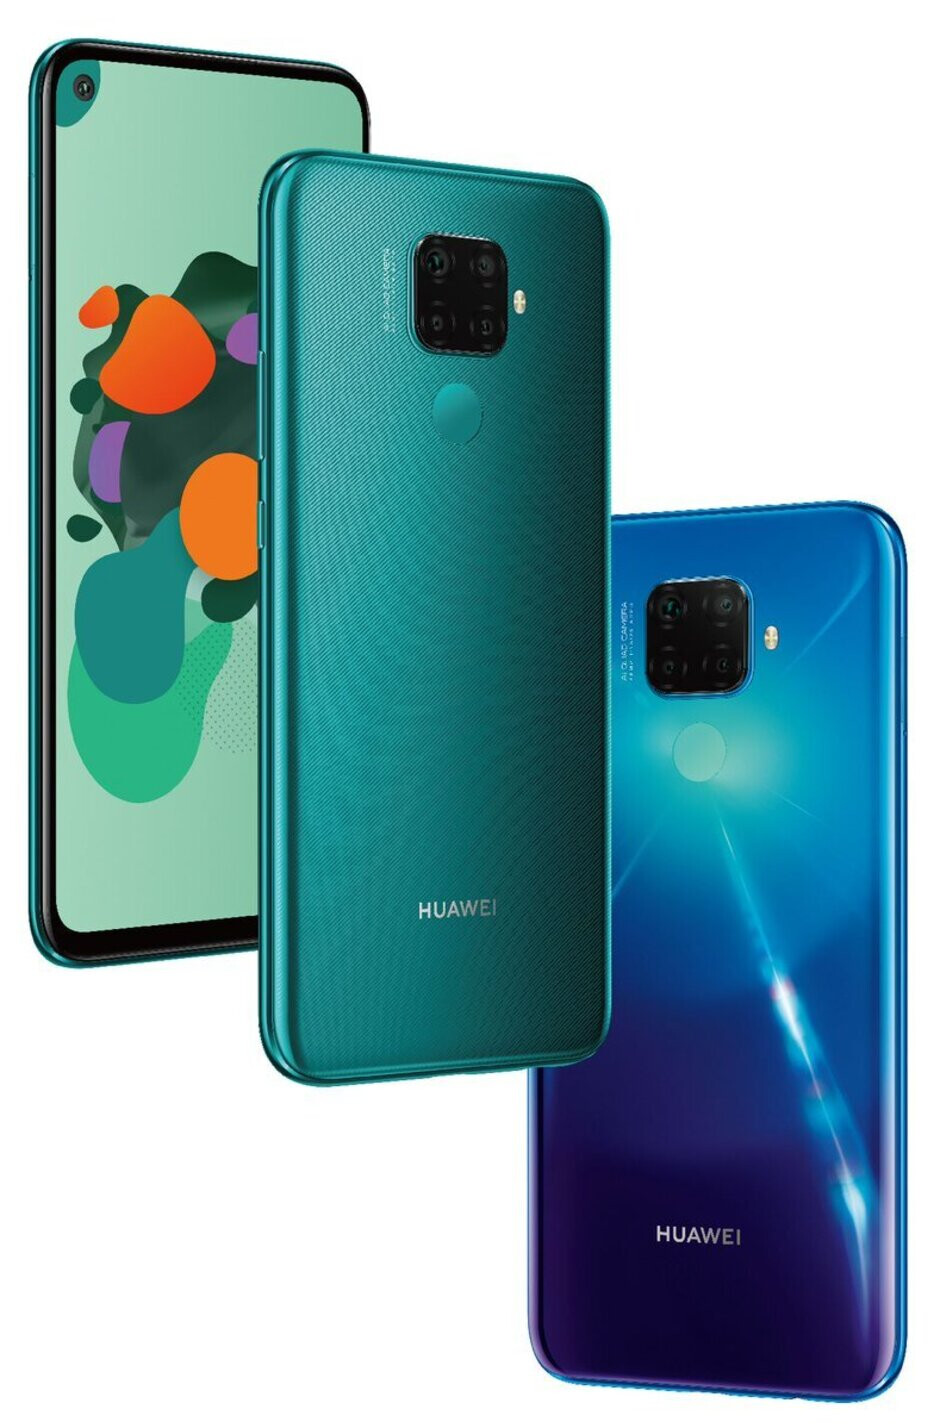 Leaked Huawei Mate 30 series promo images reveal four models